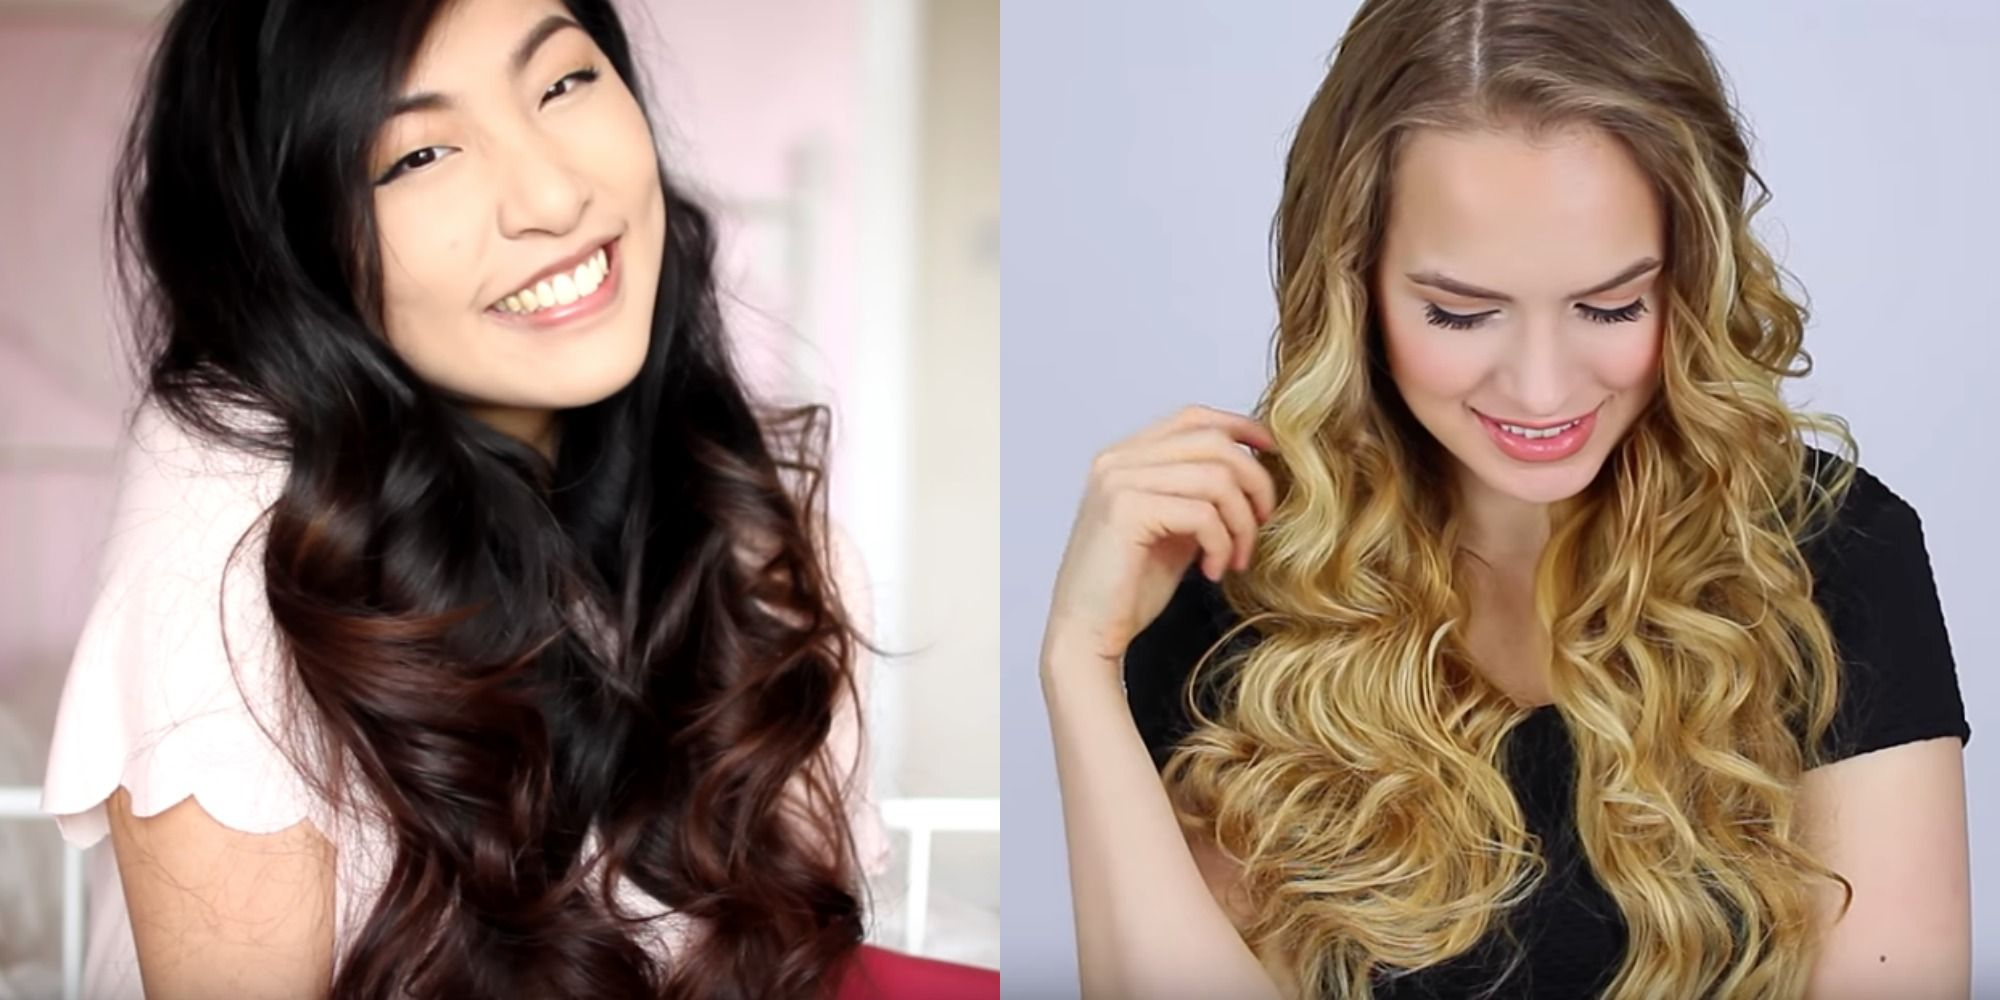 How to make really curly hair straight without heat